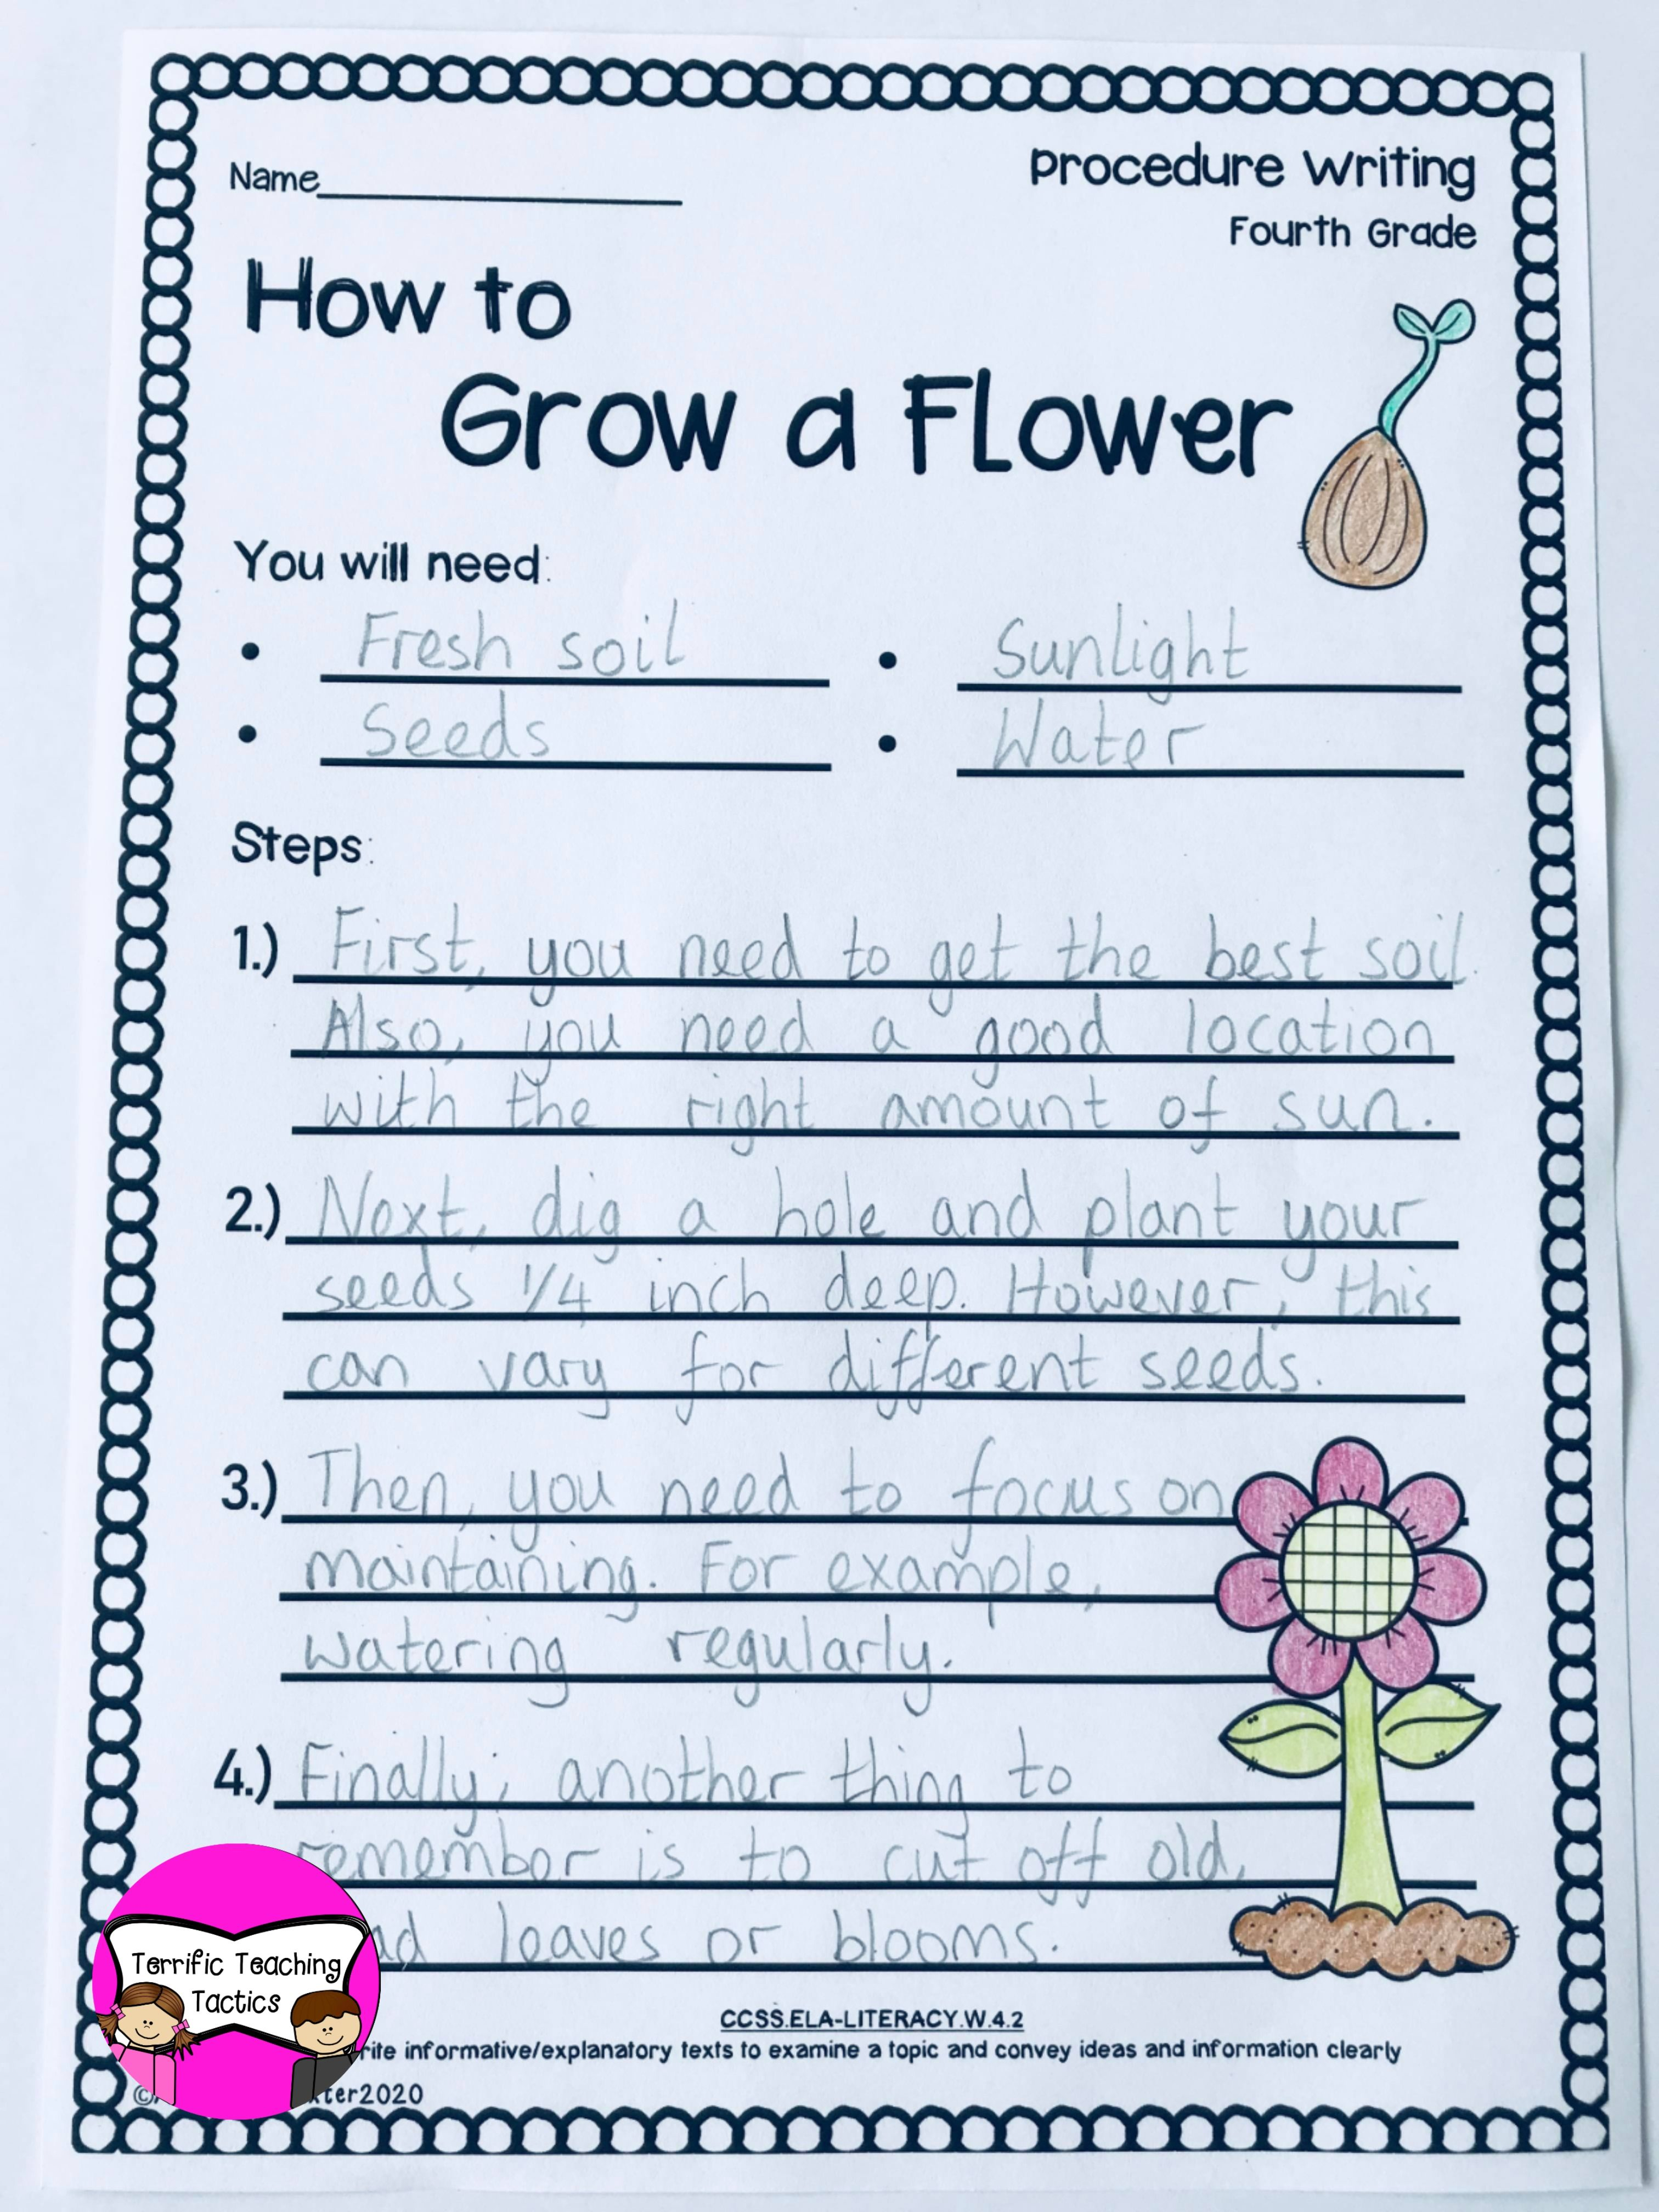 medium resolution of How To Grow a Flower Worksheet   Procedural writing